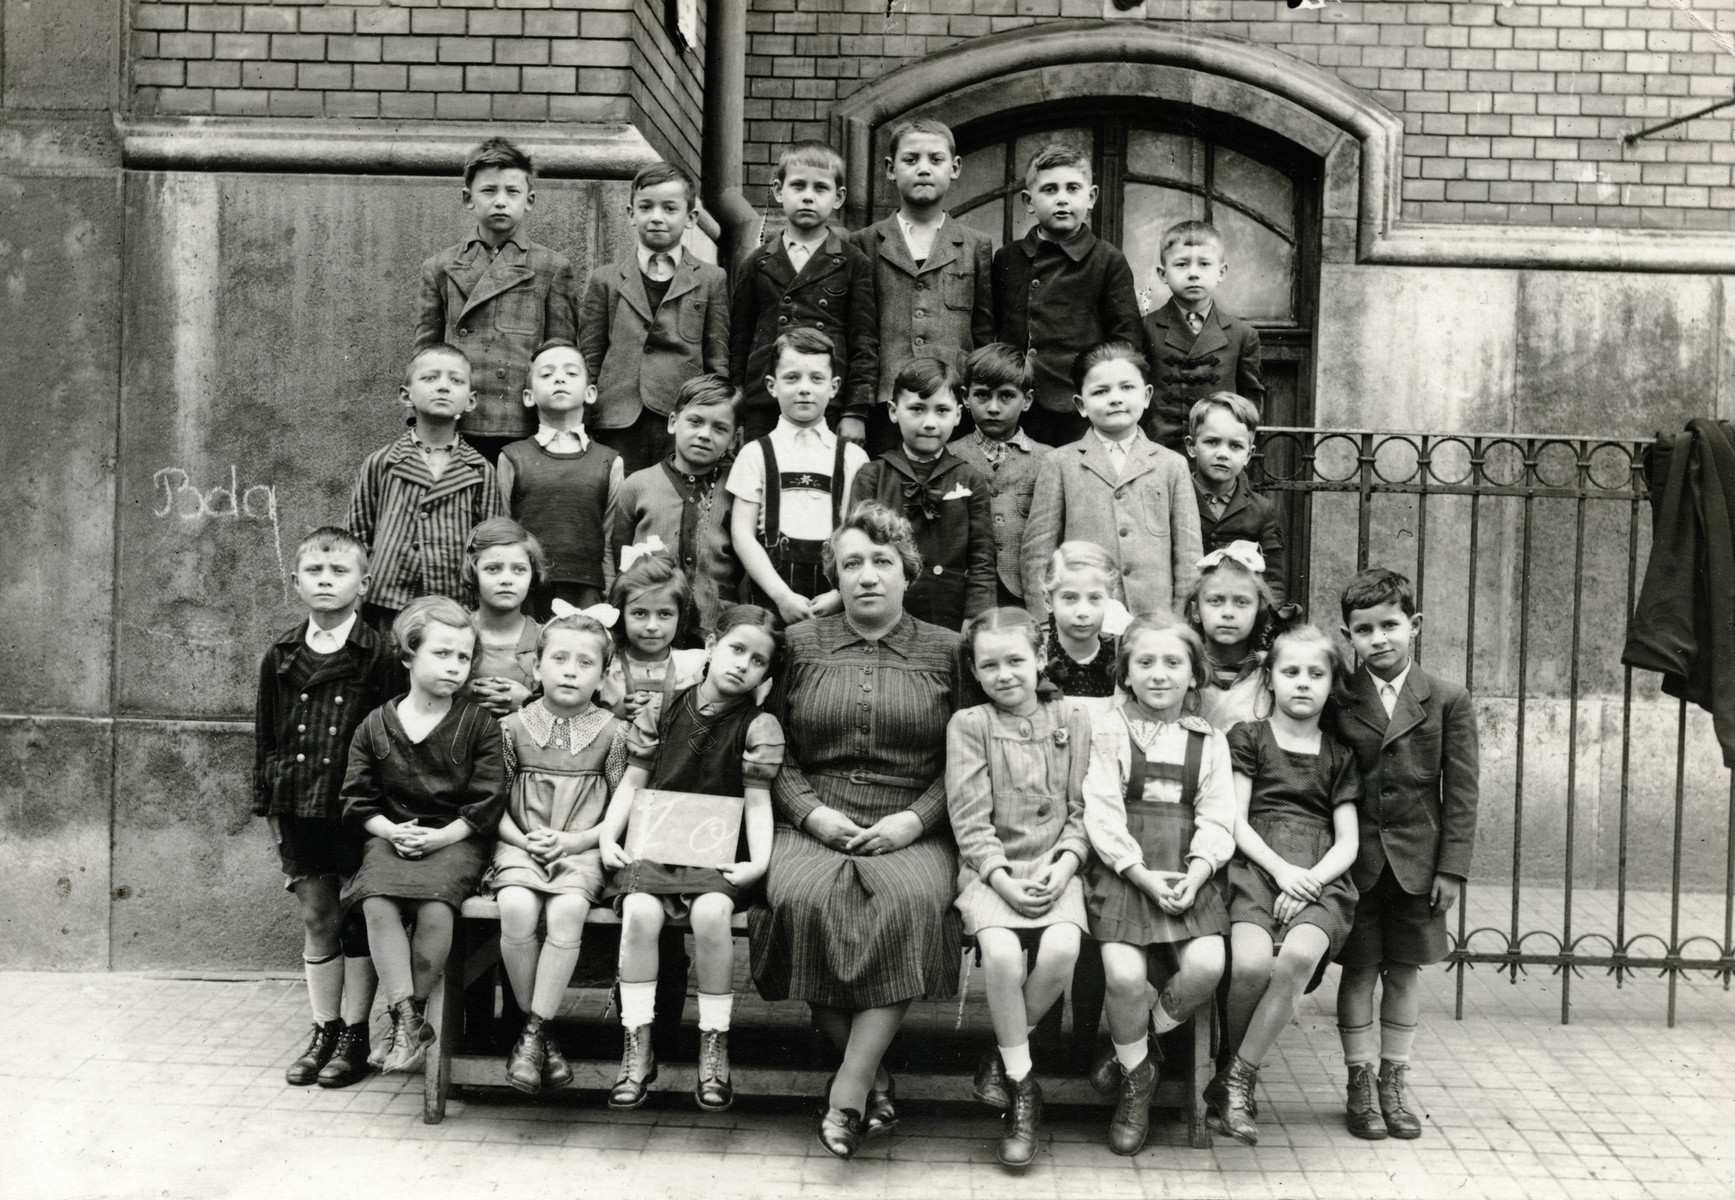 Class portrait of a first grade class in Budapest.  Judith Schonfeld is pictured in the second row, second from the right.